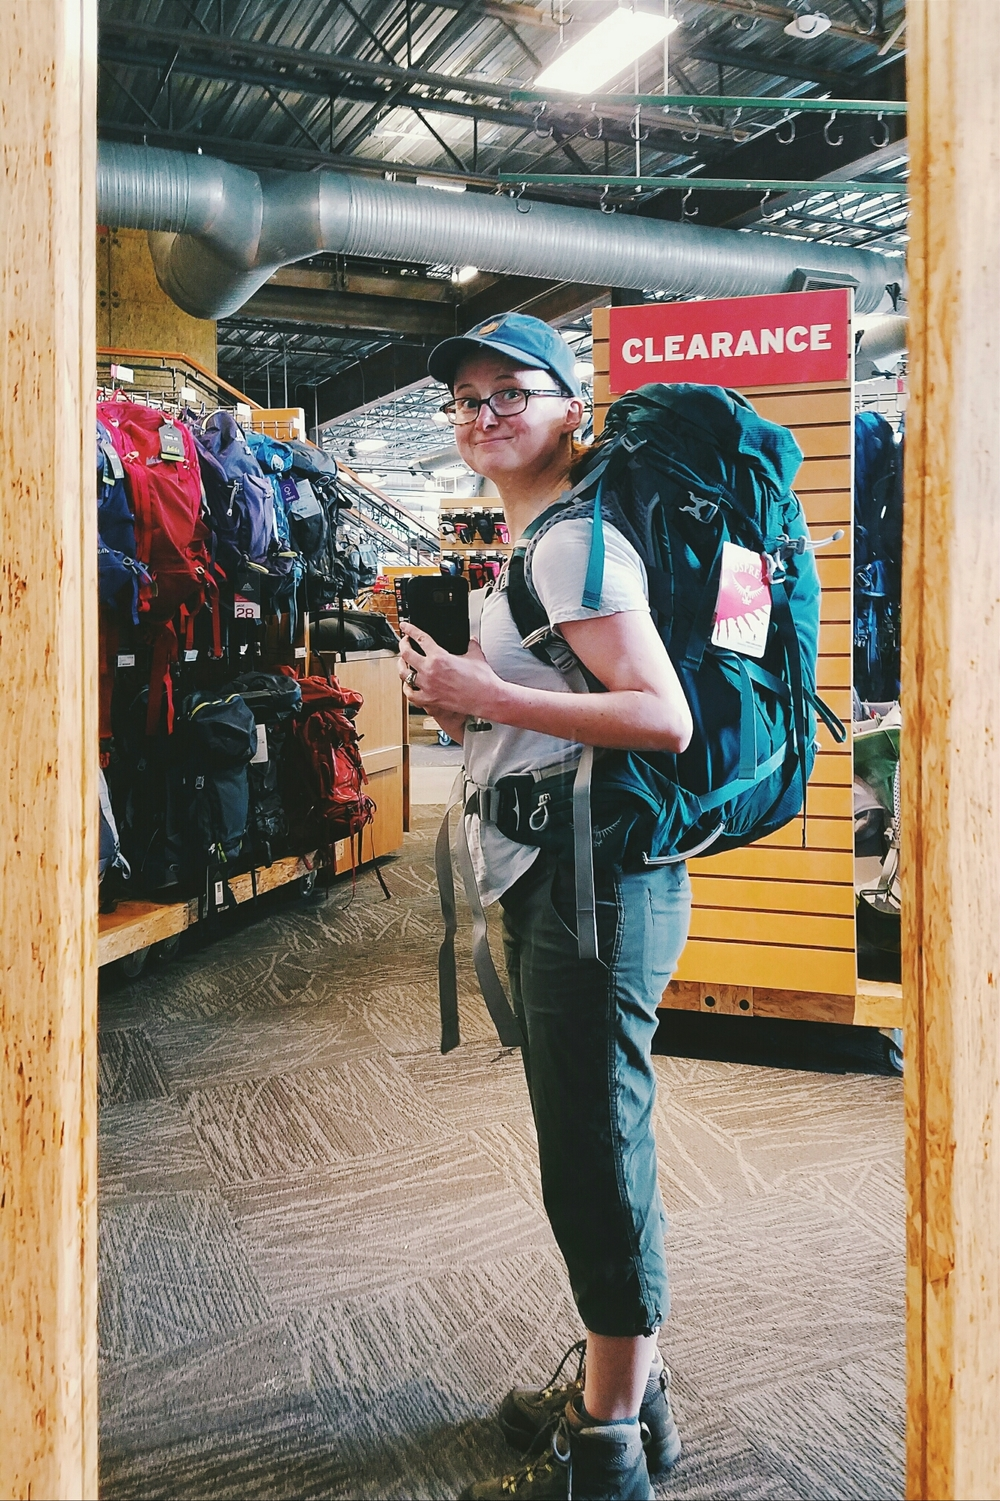 Trying on packs at REI. Luckily the only one that fit was also my favorite.I should be able to comfortably carry lots more in this!